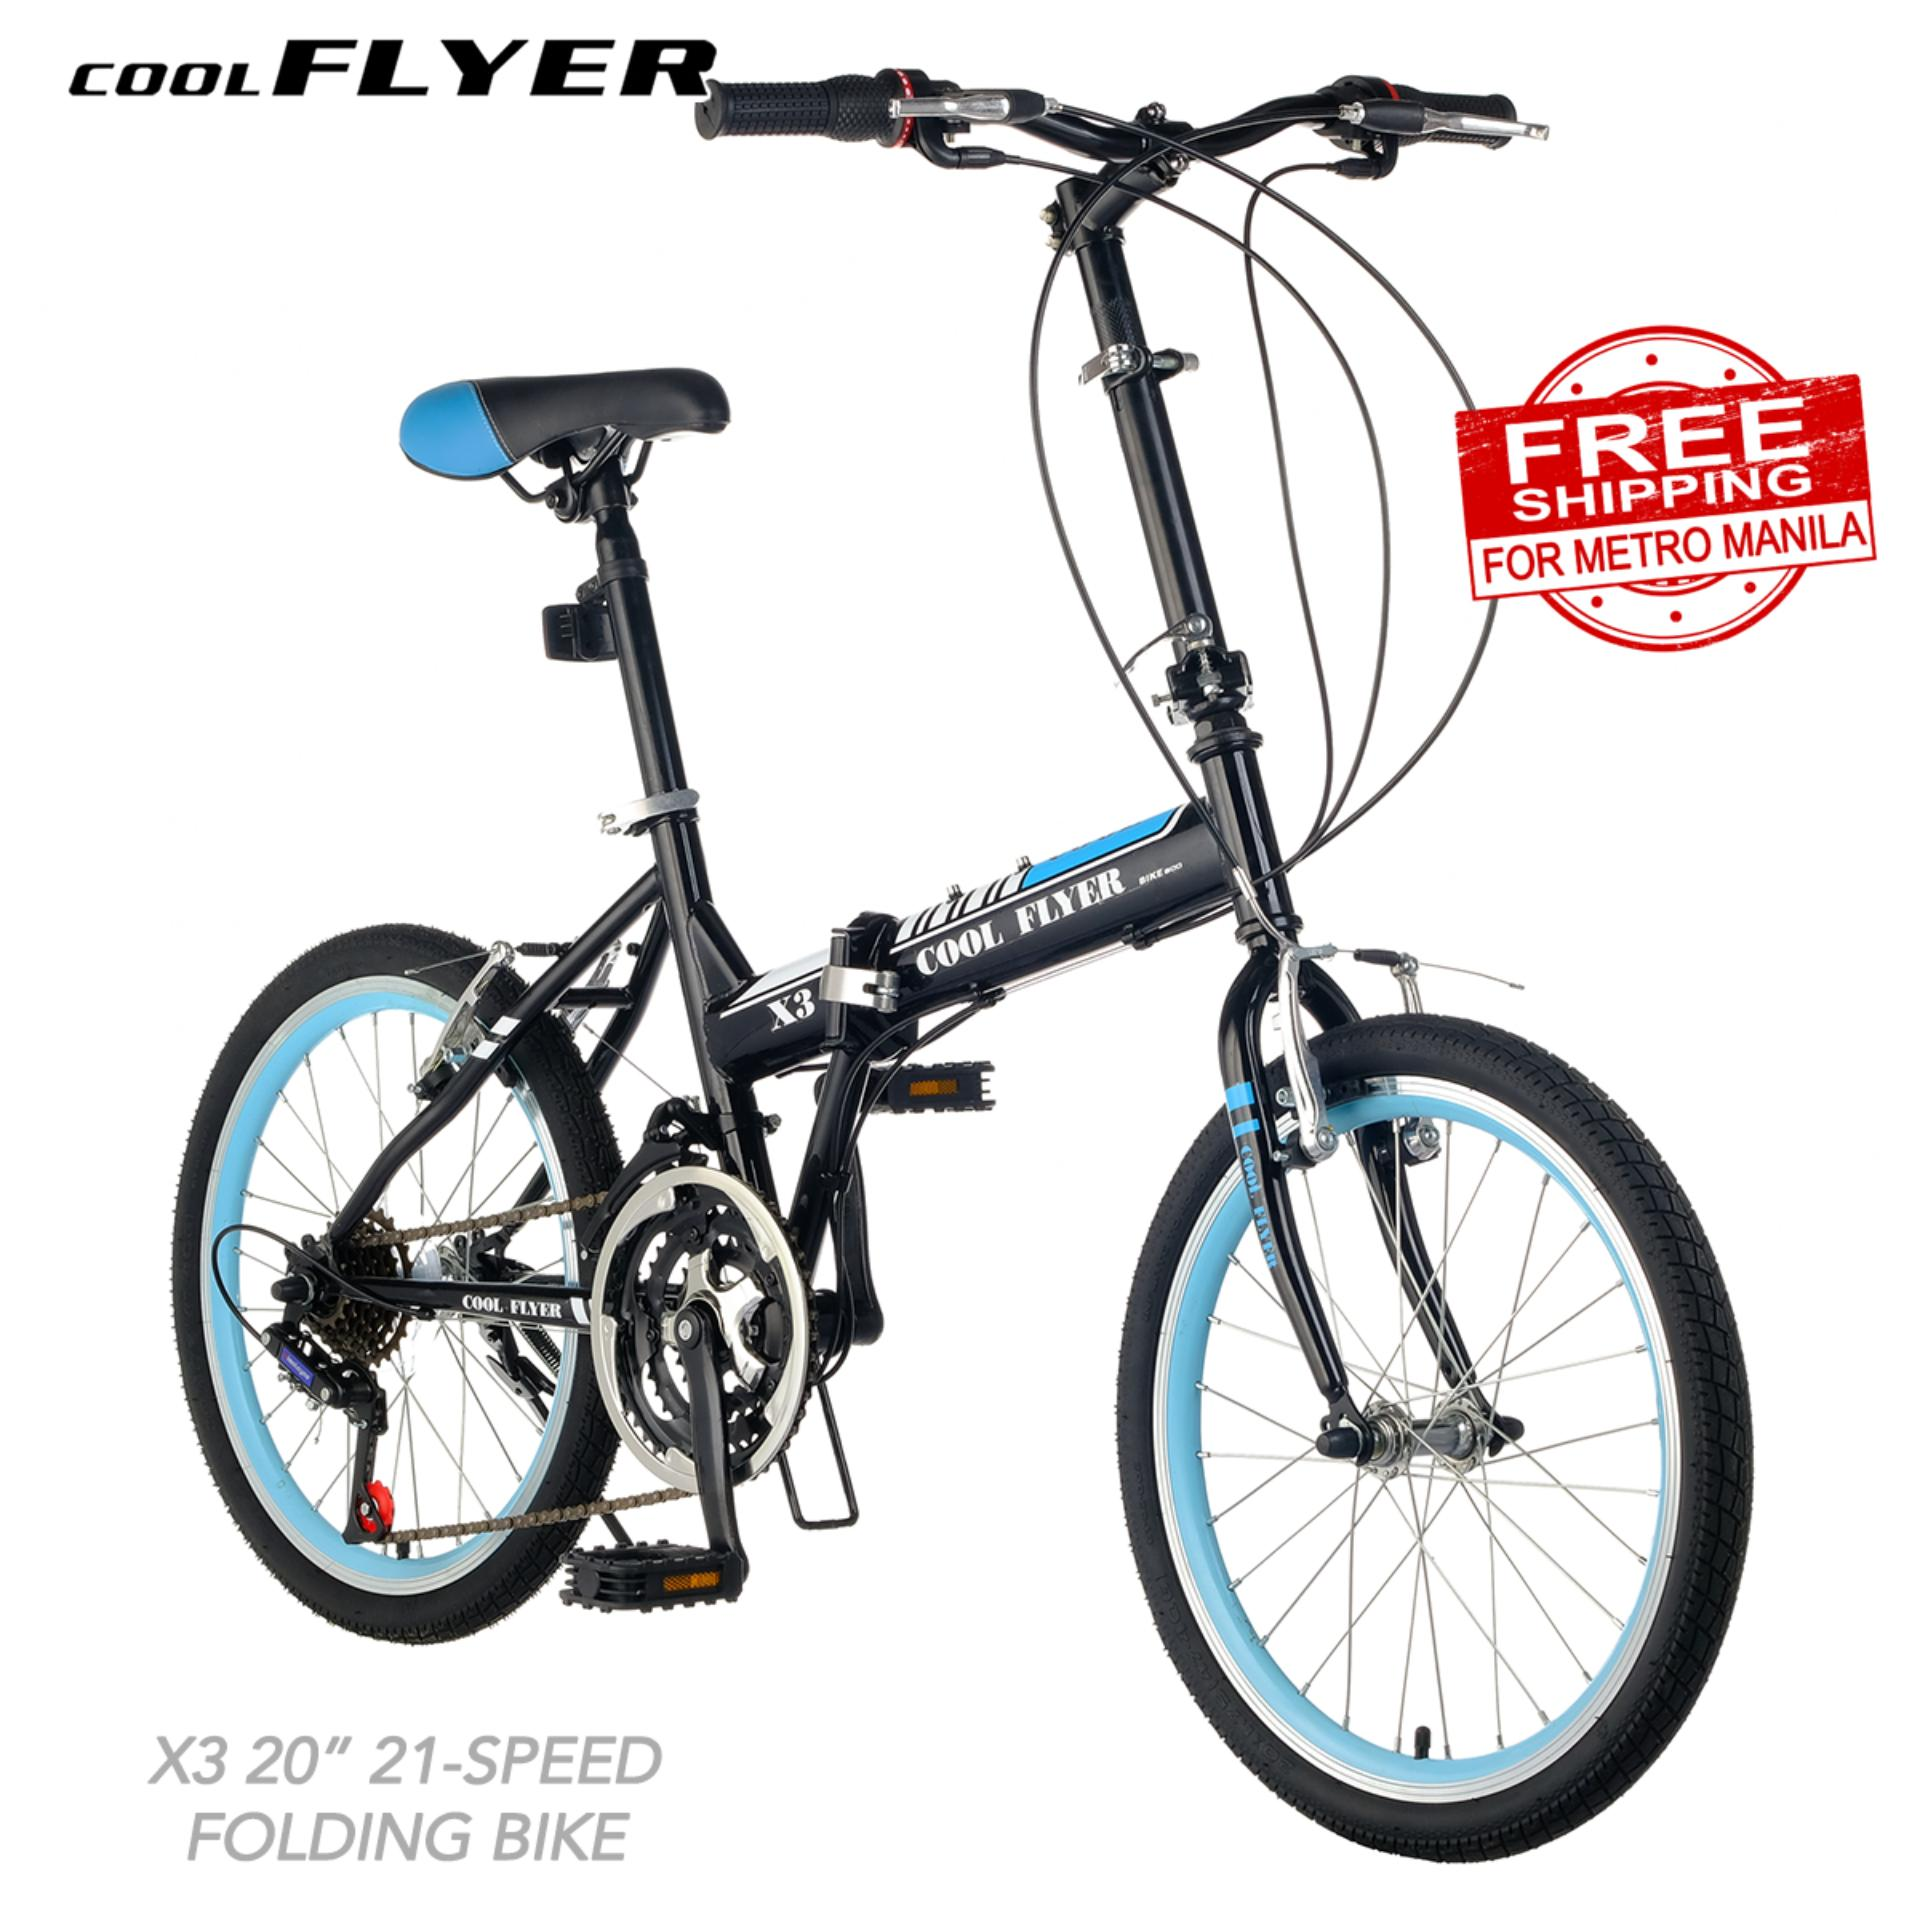 53d8d558c64 Folding Bike for sale - Portable Bike Online Deals & Prices in ...